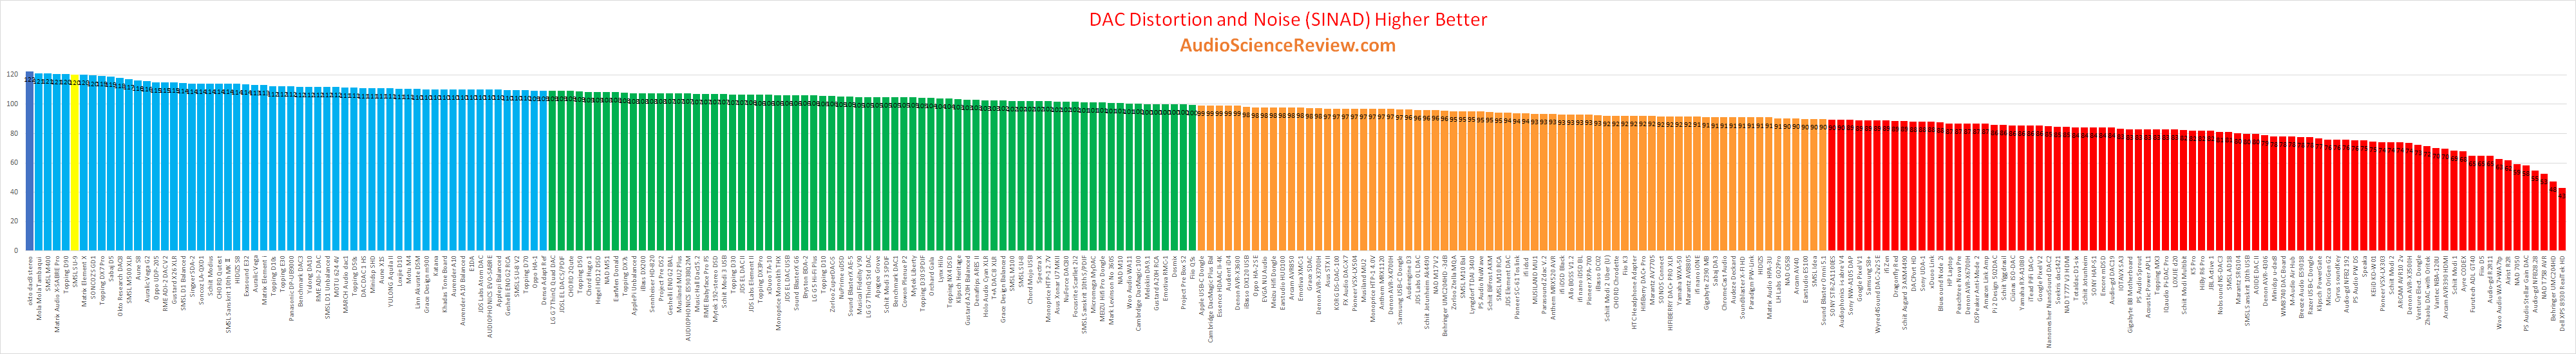 Best USB Balanced DAC Review 2020.png